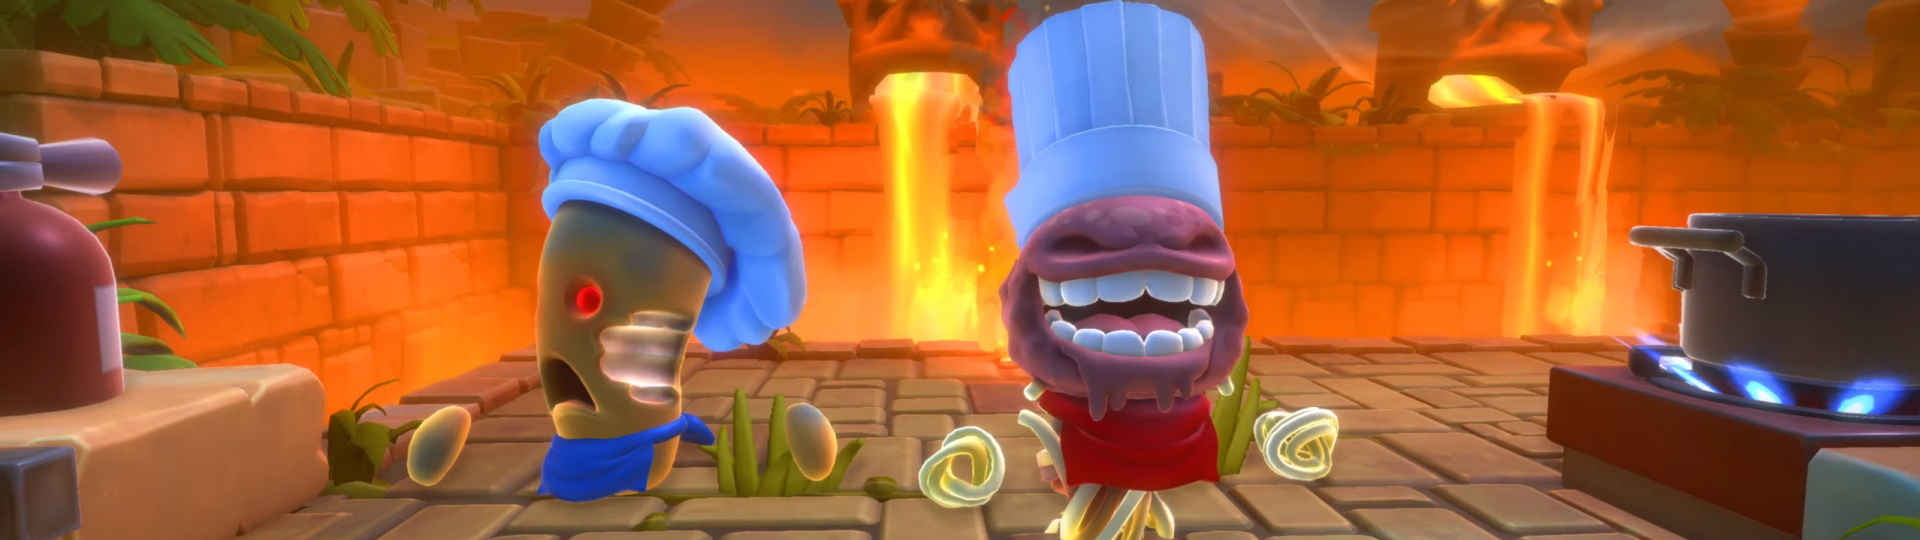 Trailer na Overcooked: All You Can Eat ukazuje nový obsah | Videa